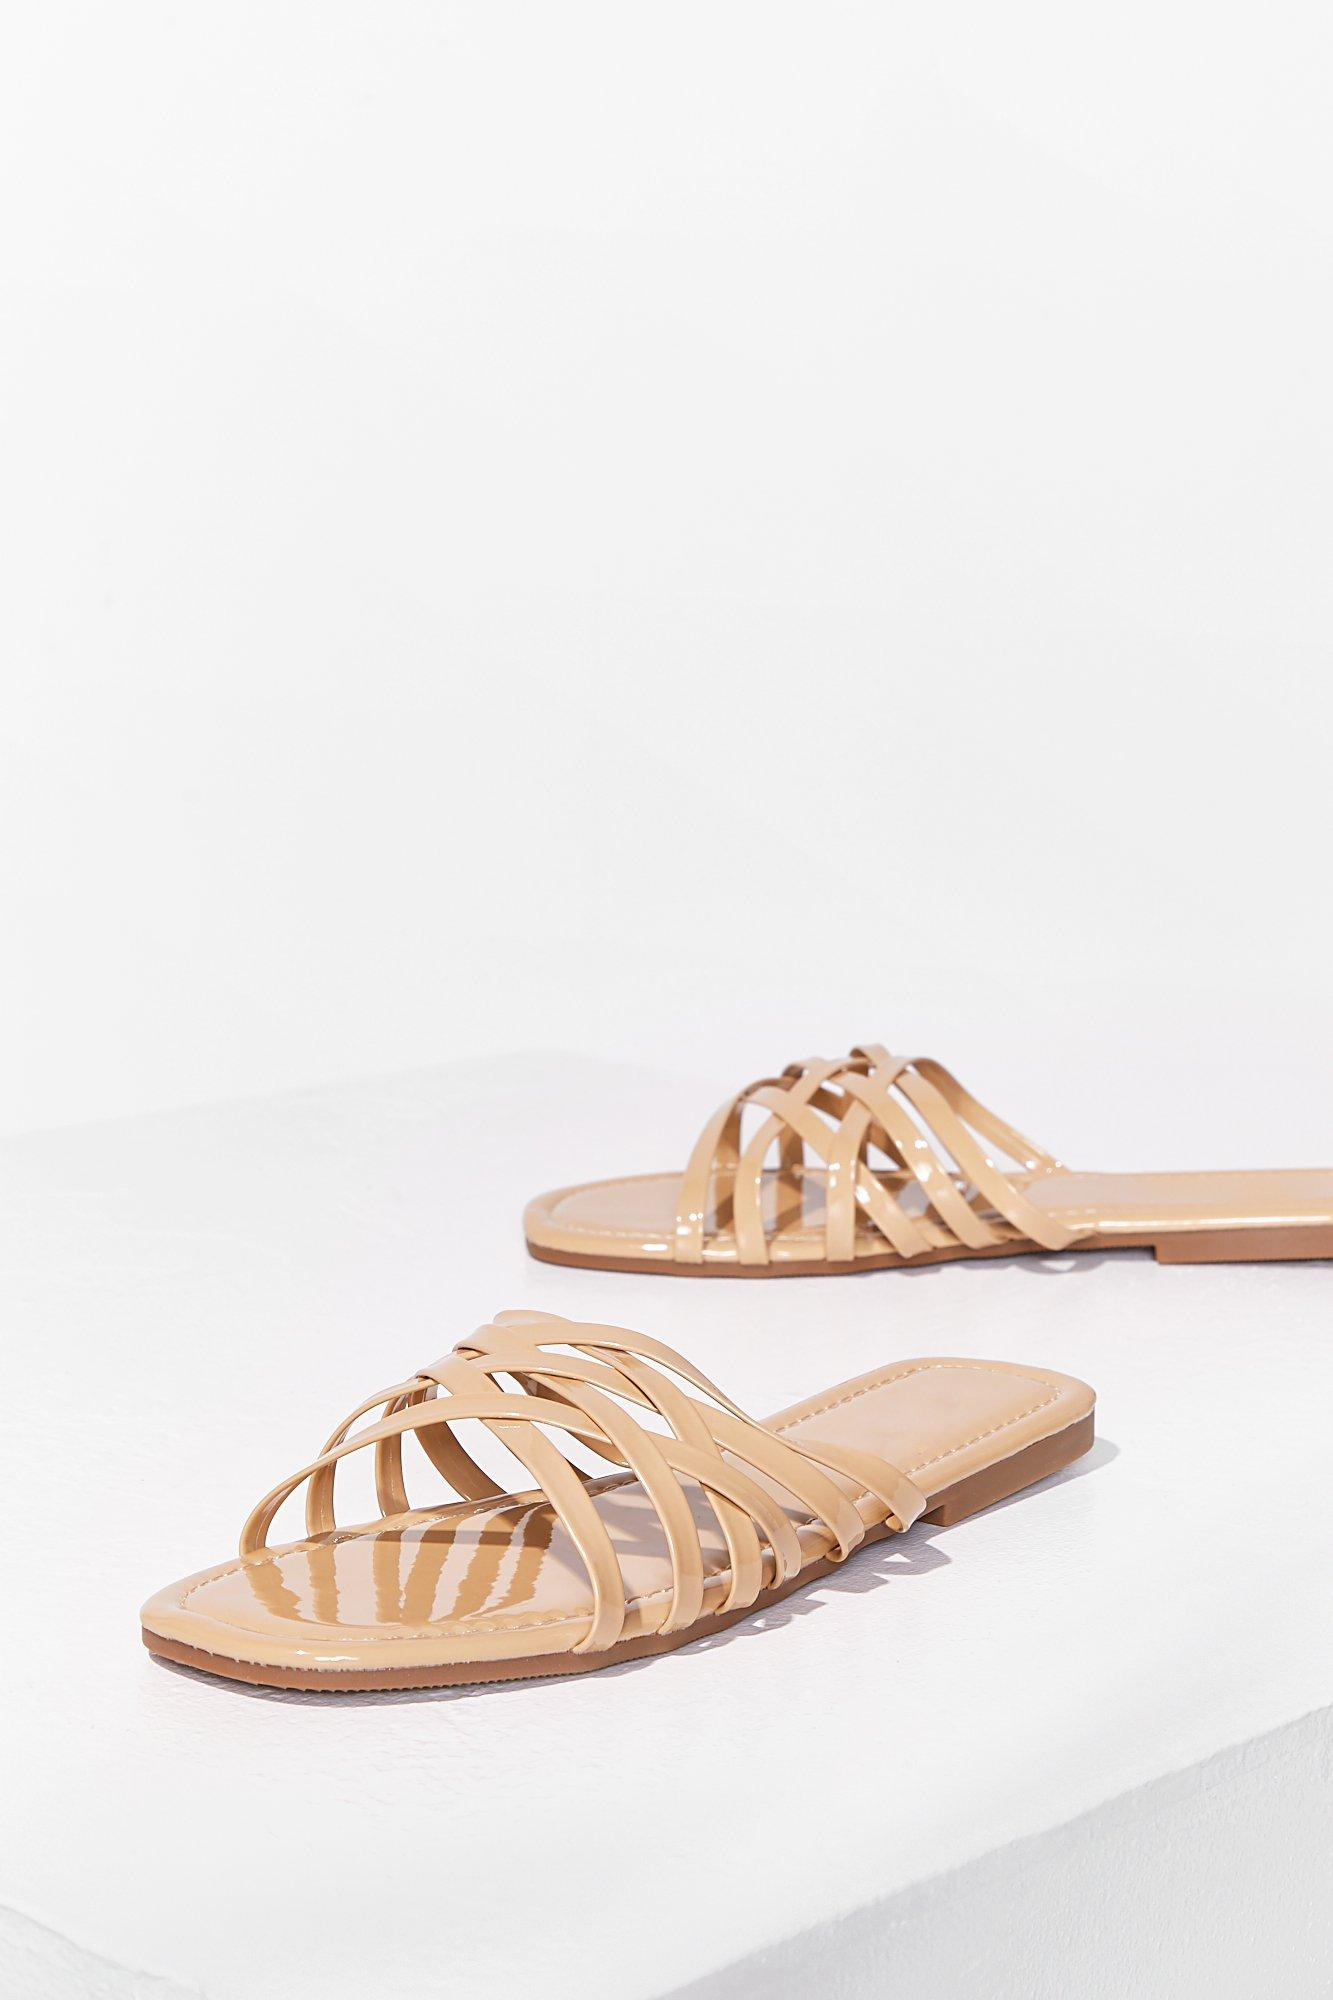 Image of Womens Who's Slide Are You On Faux Leather Flat Sandals - Beige